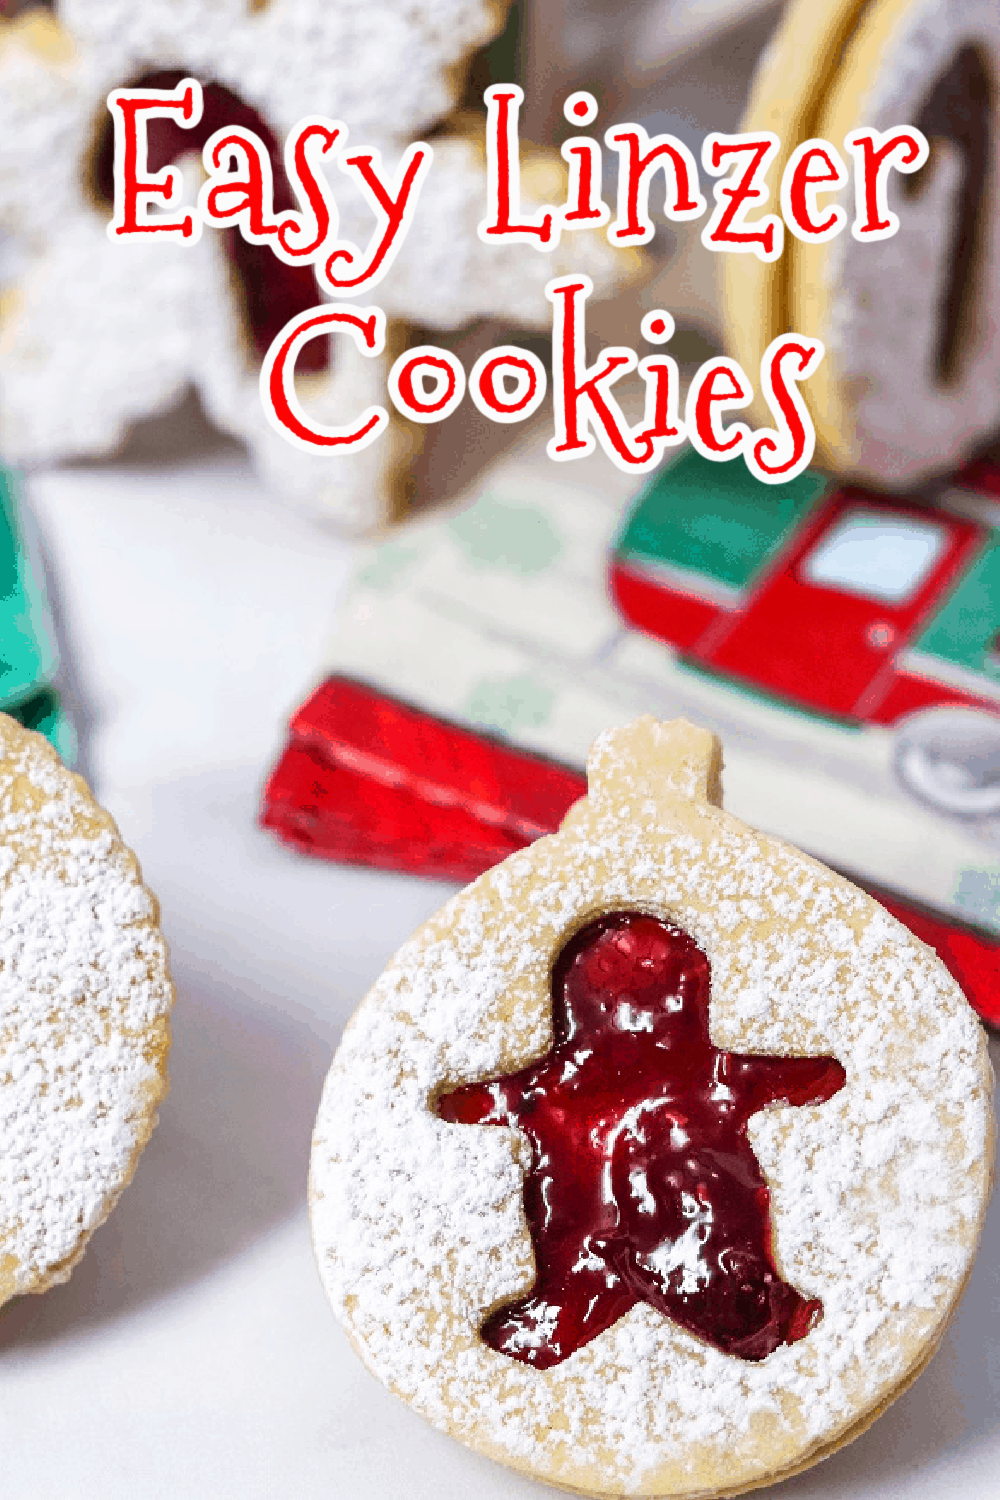 These buttery shortbread Linzer cookies are filled with raspberry jam that peeks through the cutout on top of each cookie. Dusted with powdered sugar, these sandwich cookies make the perfect holiday sweet treat. So easy to make with only a few ingredients! Get those cookie cutters out! via @Mooreorlesscook